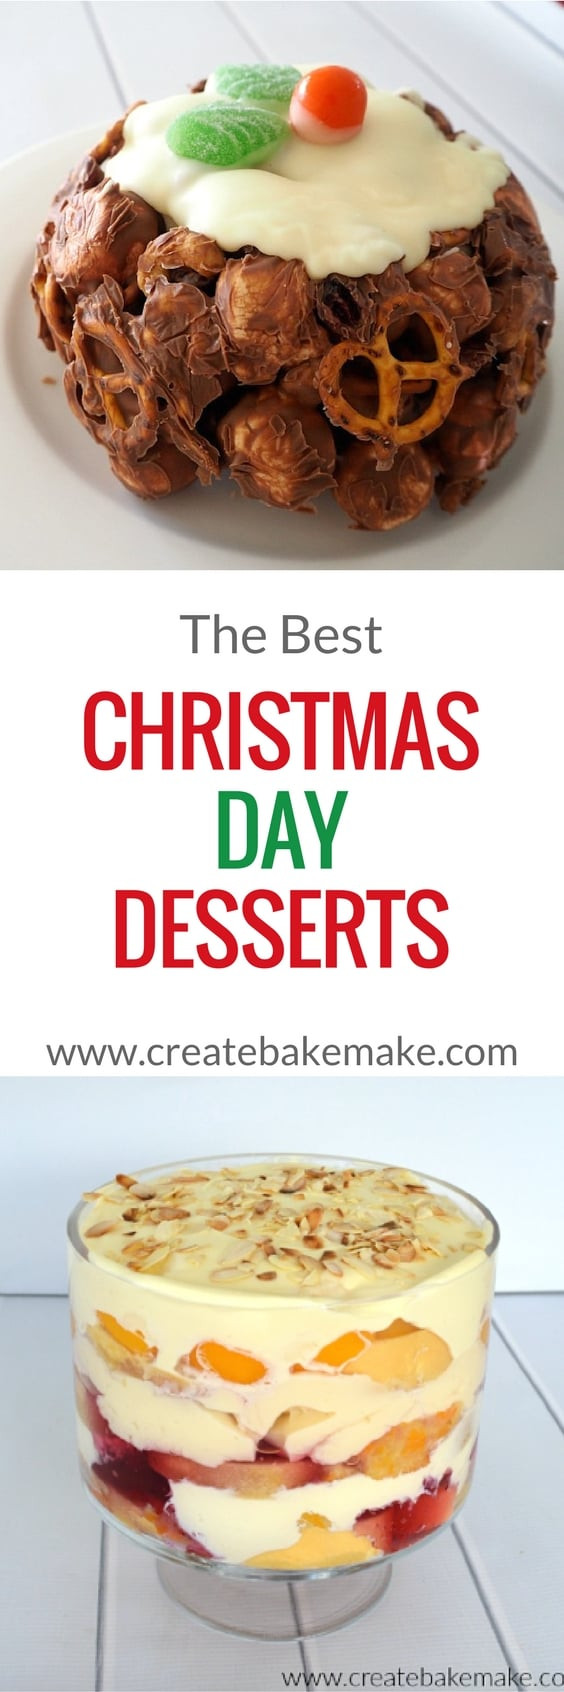 Christmas Day Desserts  The Best Christmas Day Desserts Create Bake Make